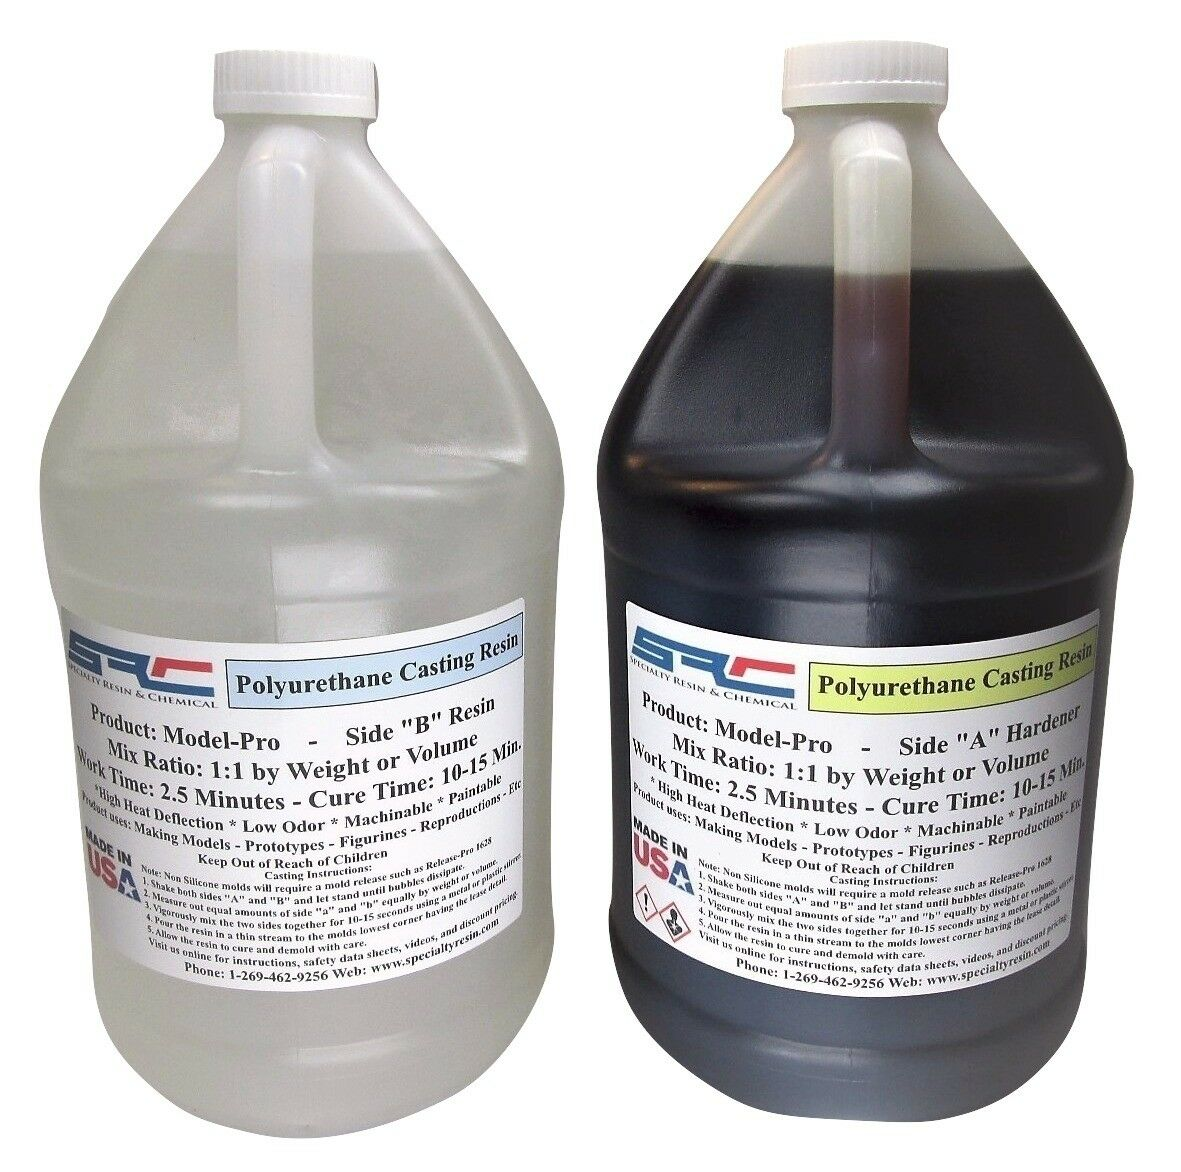 Model-Pro Polyurethane Casting Resin 2 Gallon Kit Free Shipping